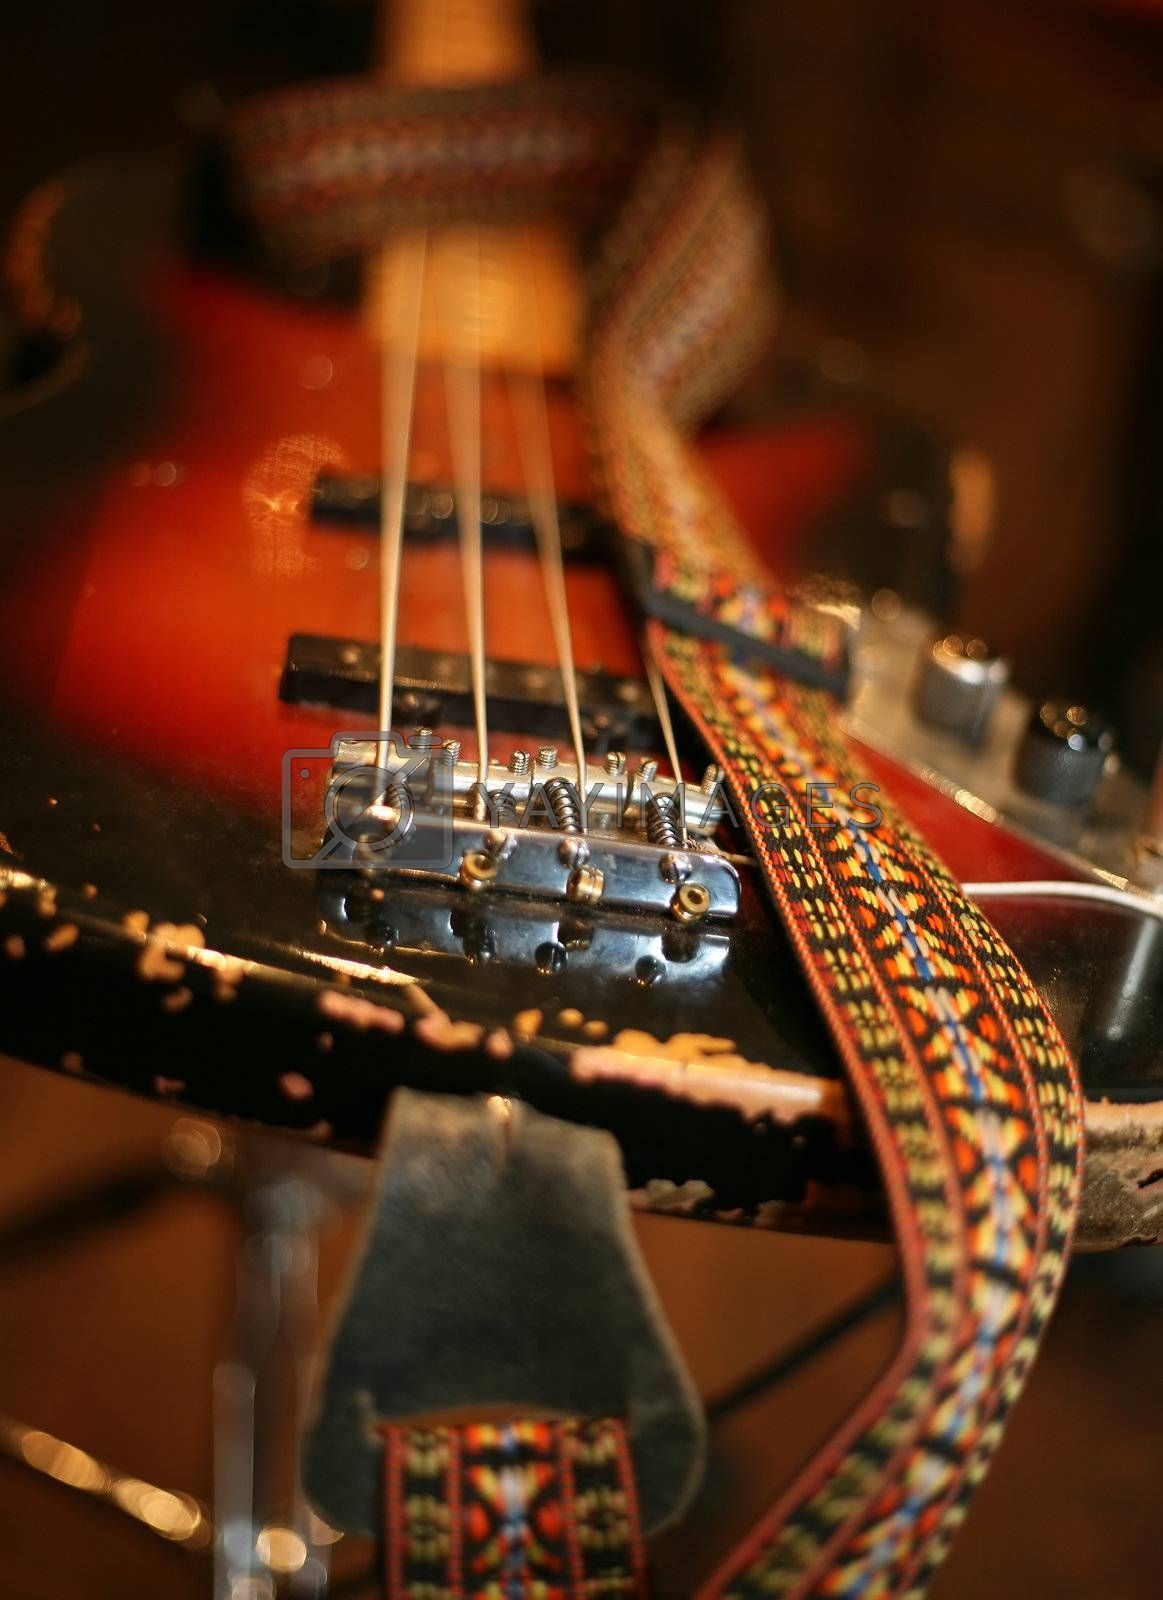 Conceptual the image of a guitar with a loop